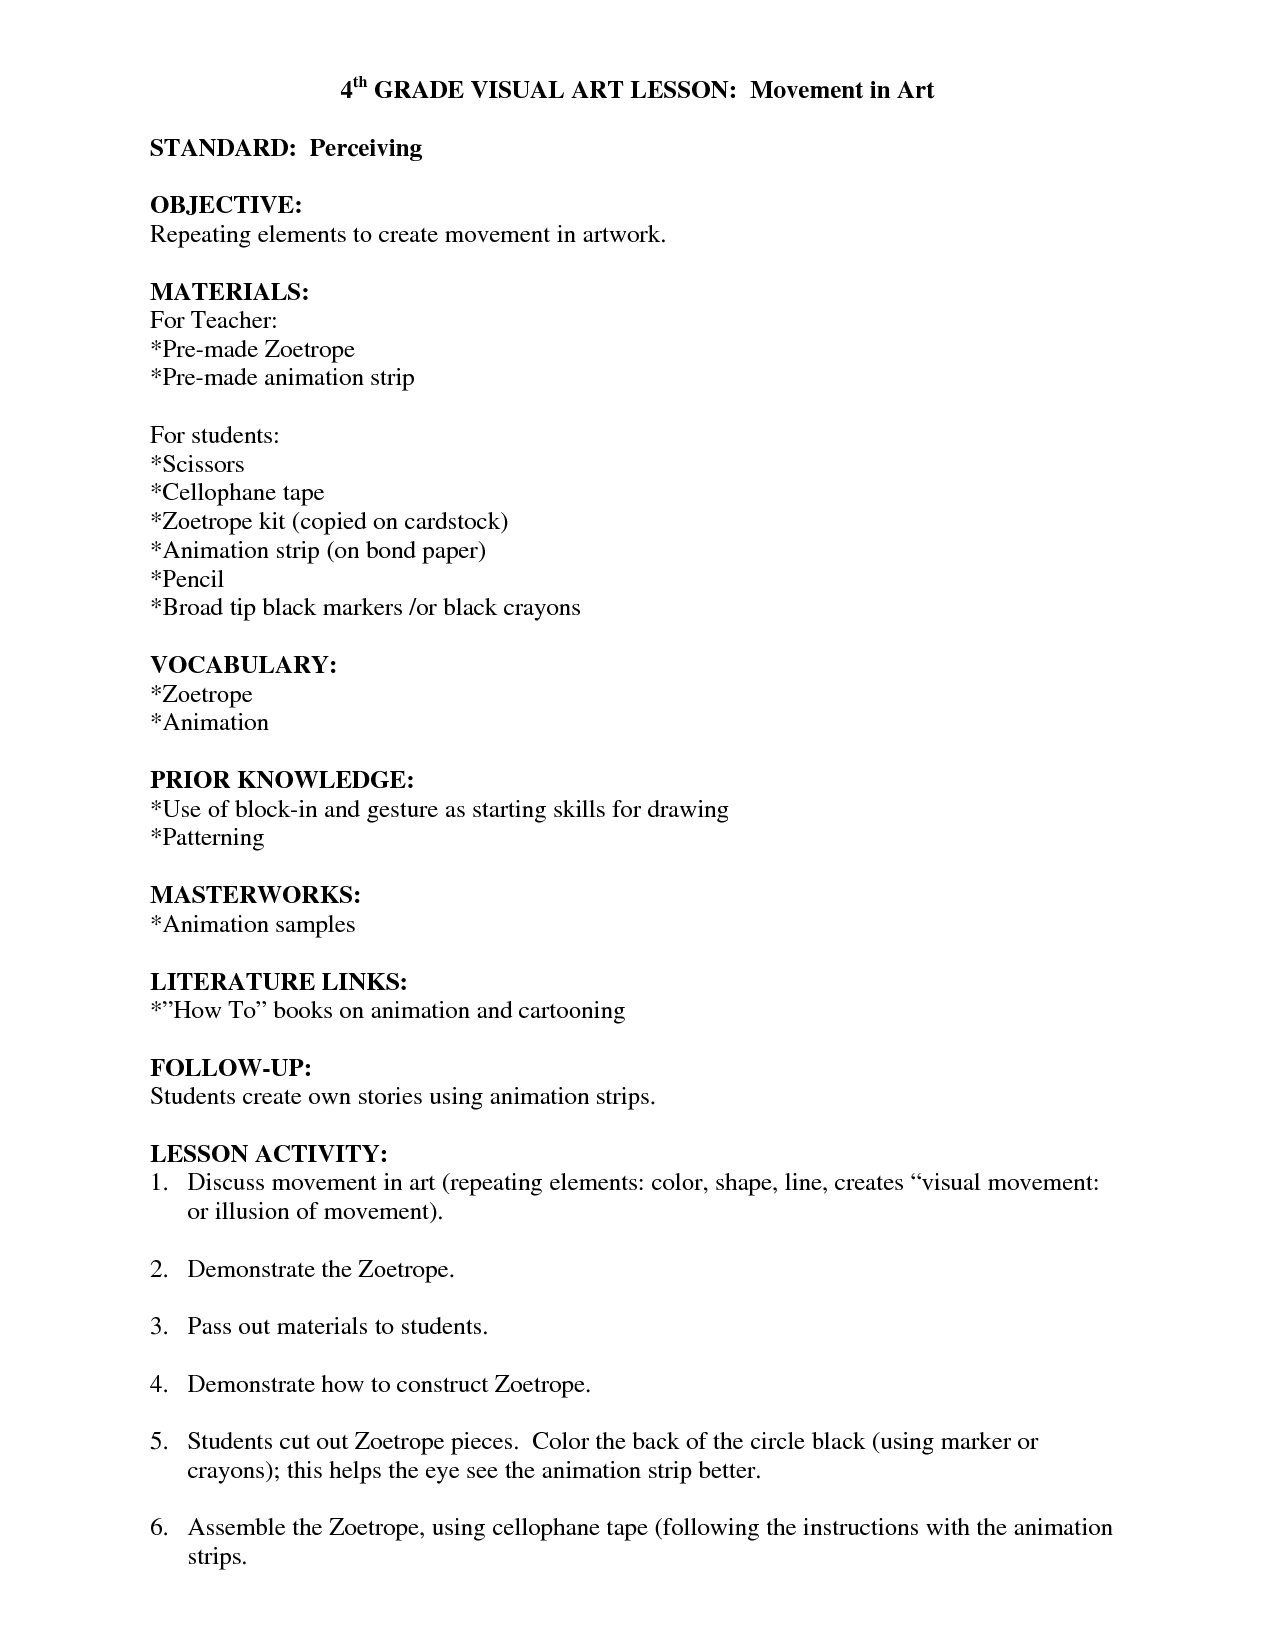 Visual Arts Lesson Plan Template  Visual Arts Lesson Plan